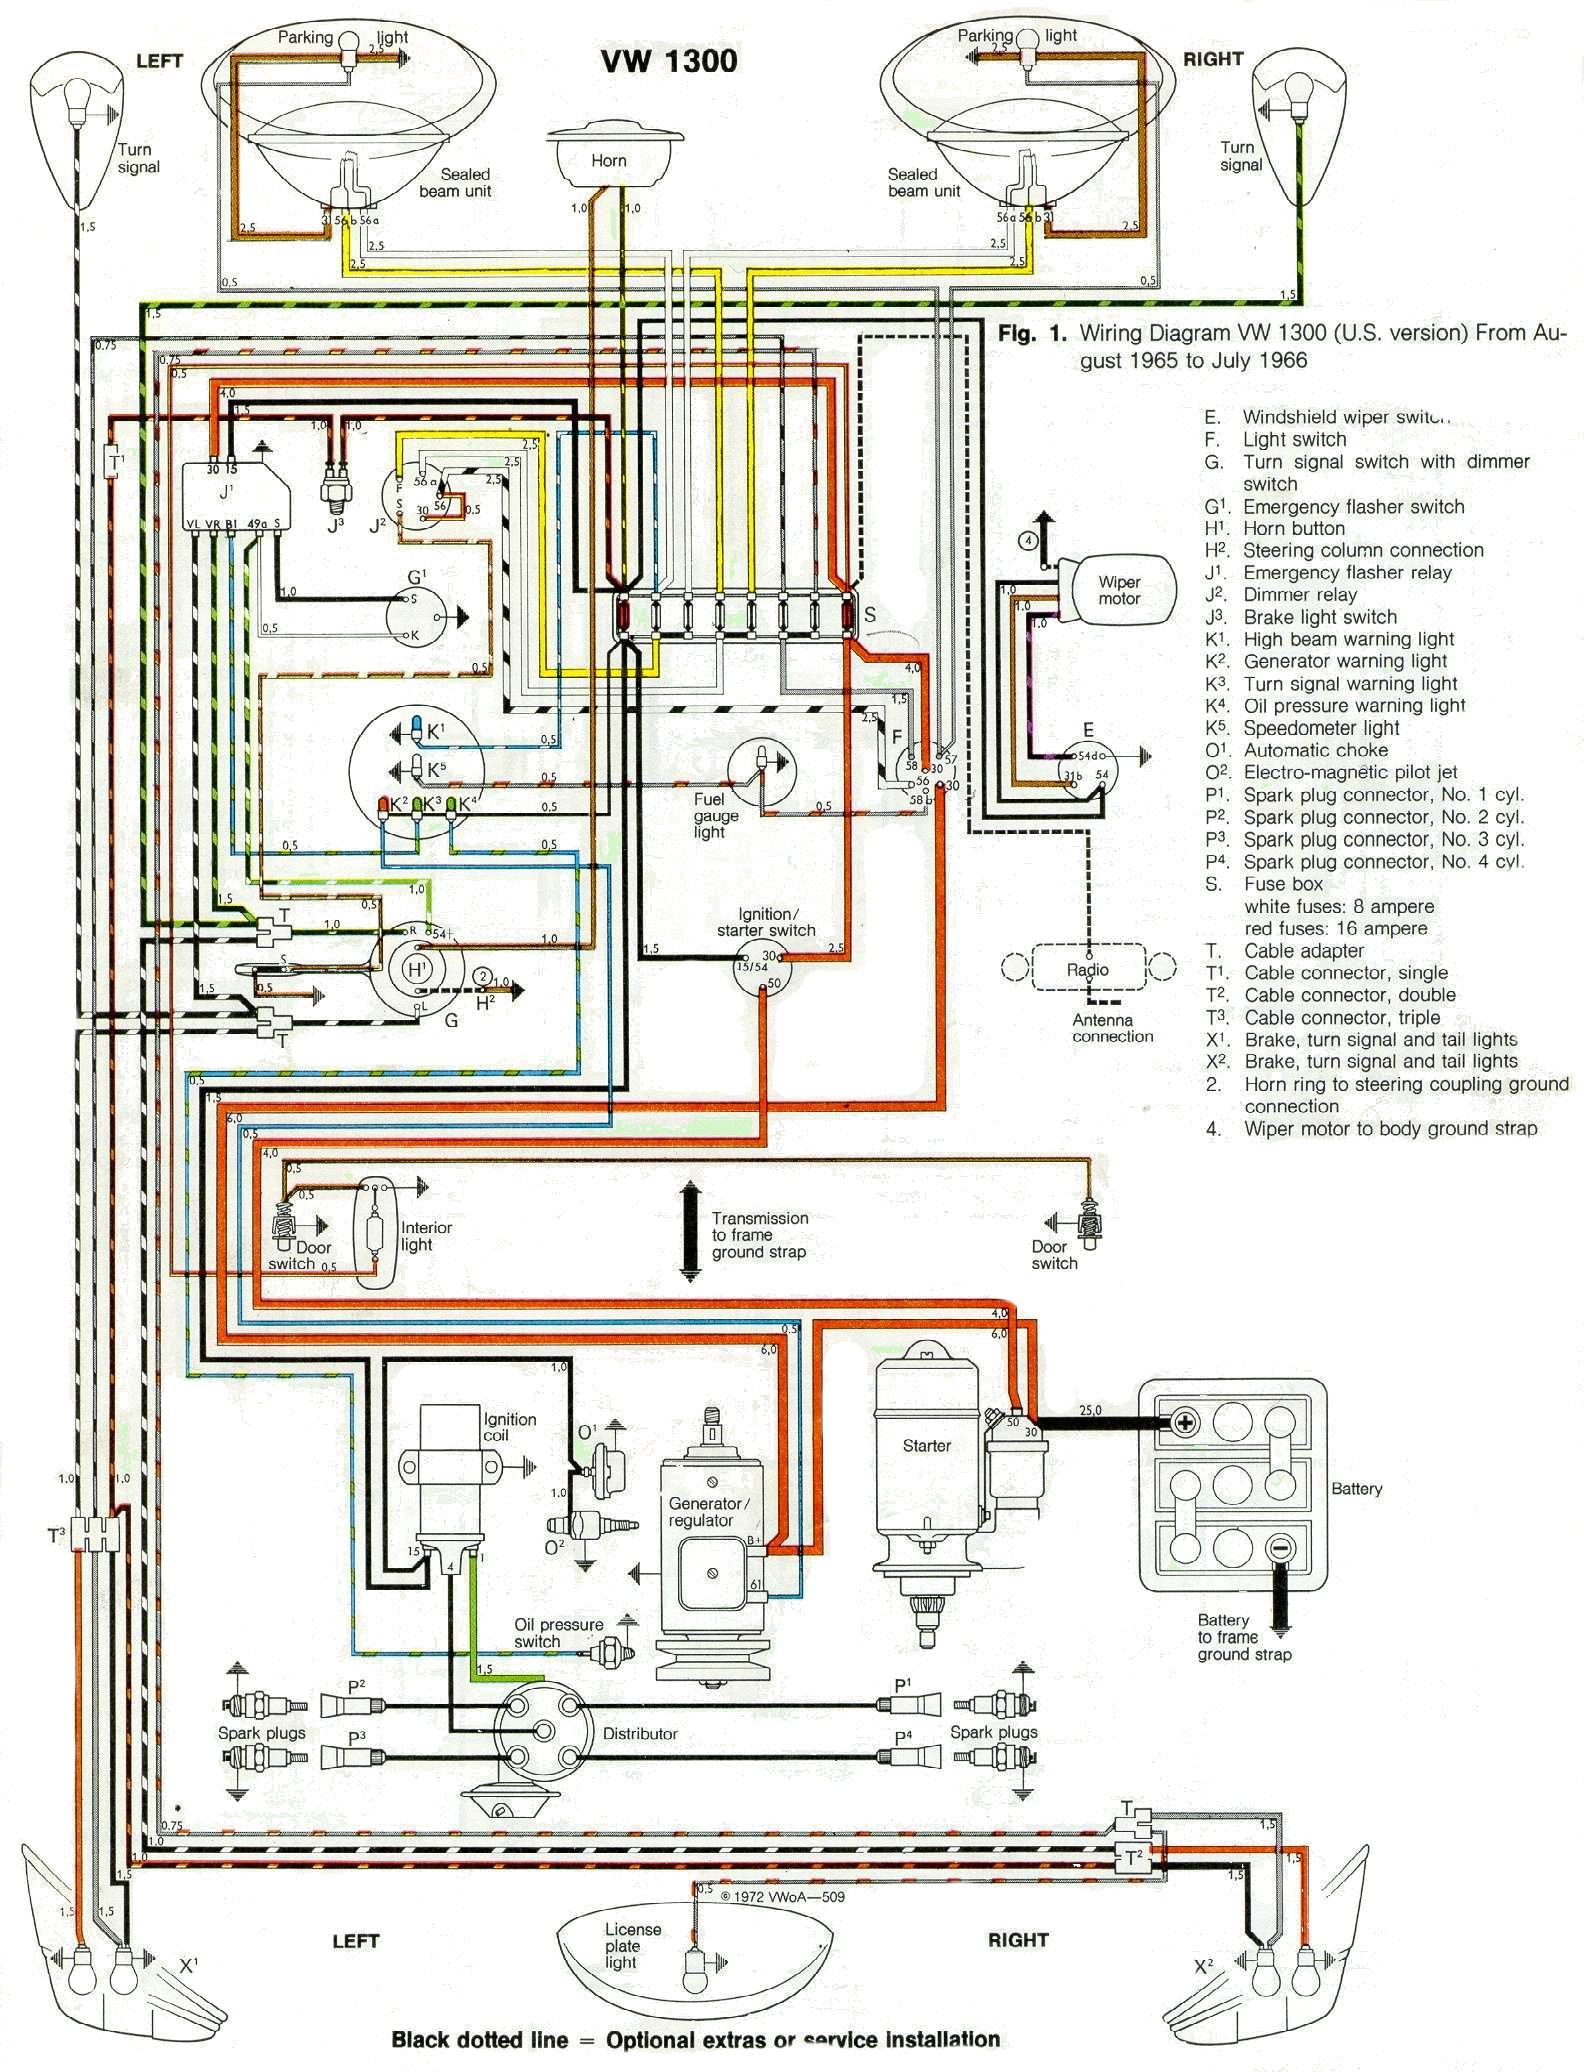 hight resolution of 1966 wiring diagram vw bug light switch diagram 1966 vw bug wiring